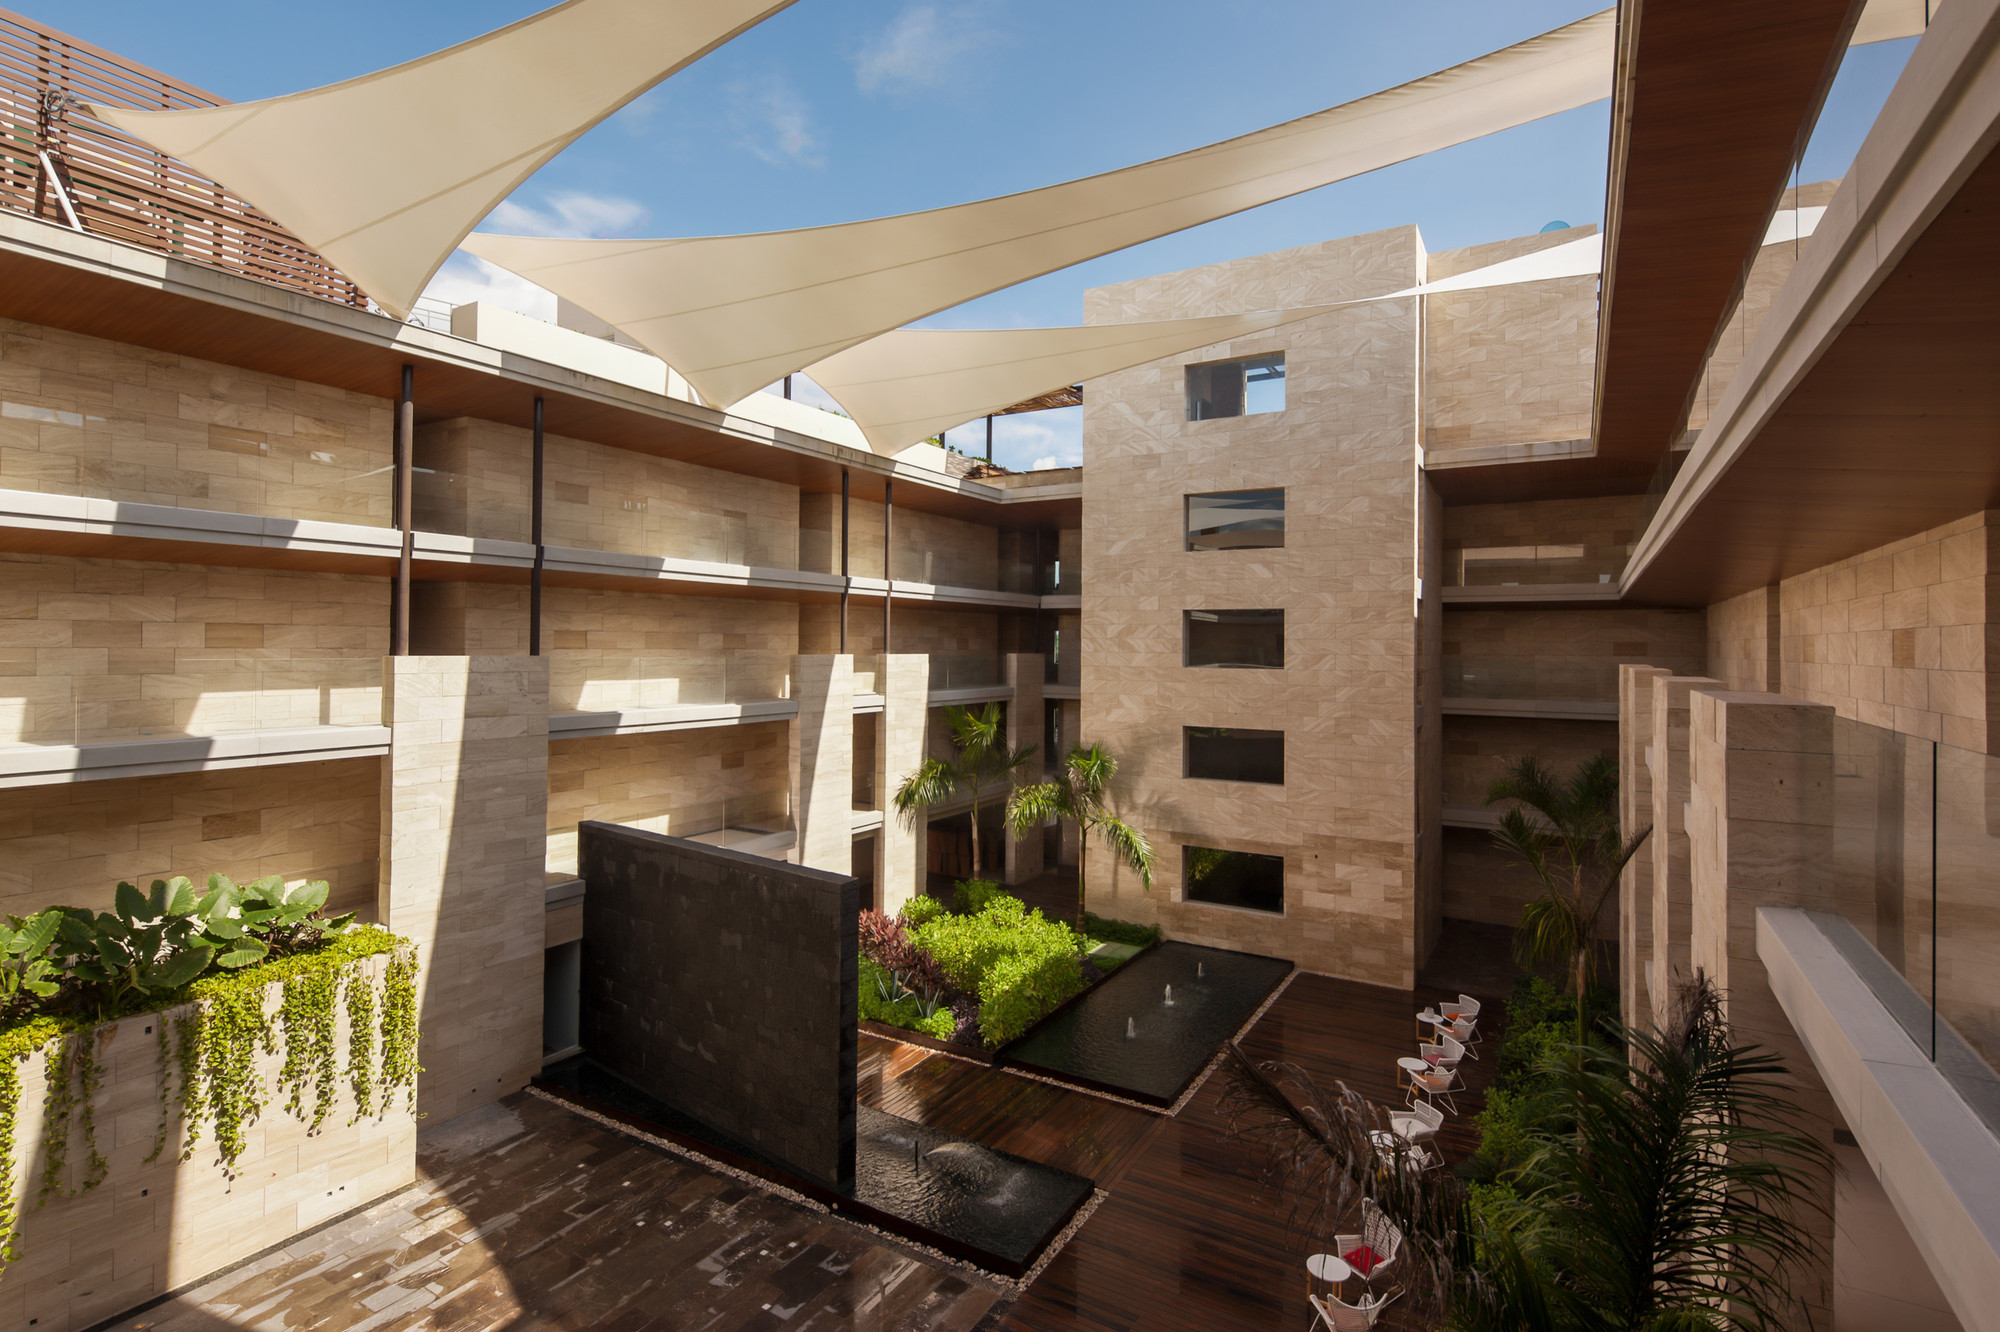 Hotel boutique cacao rdlp arquitectos archdaily m xico for Hotel boutique mexico